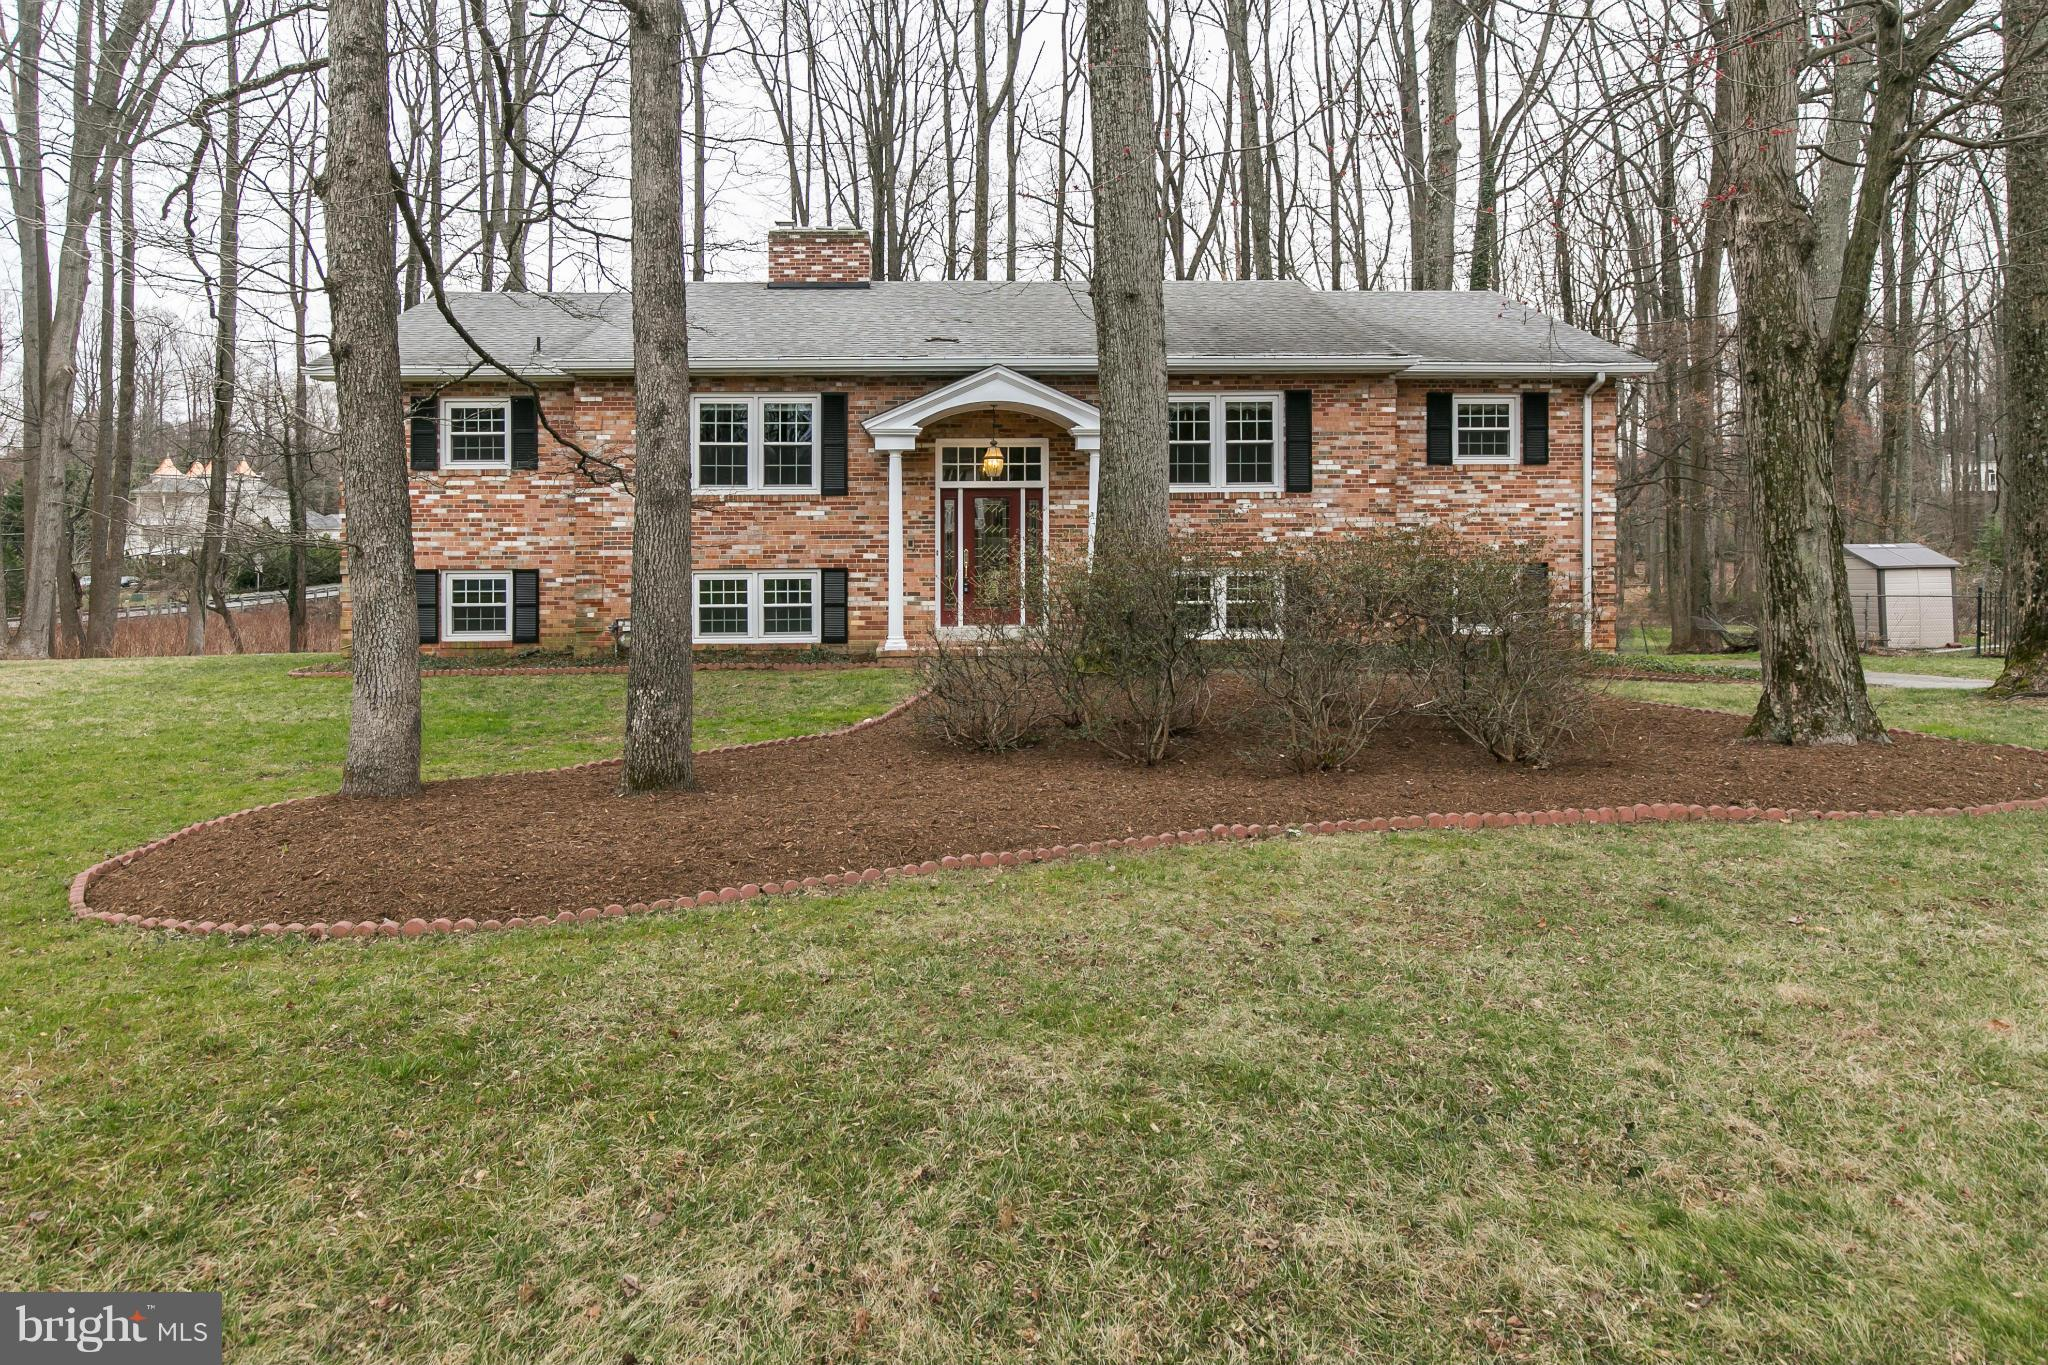 All-brick colonial located on 1+ acre lot - conveniently located to Tysons Corner, DC, Silver Line Metro & two airports.  Two finished levels w/a walk-out LL.  Hardwoods throughout the main level. Updated kitchen w/granite, stainless steel - opens to family room with FP. LR w/FP.  DR w/SGD to deck. LL w/large rec. rm w/FP & 2 addl BRs on the lower level. All BAs are updated. Large, 2-car garage.